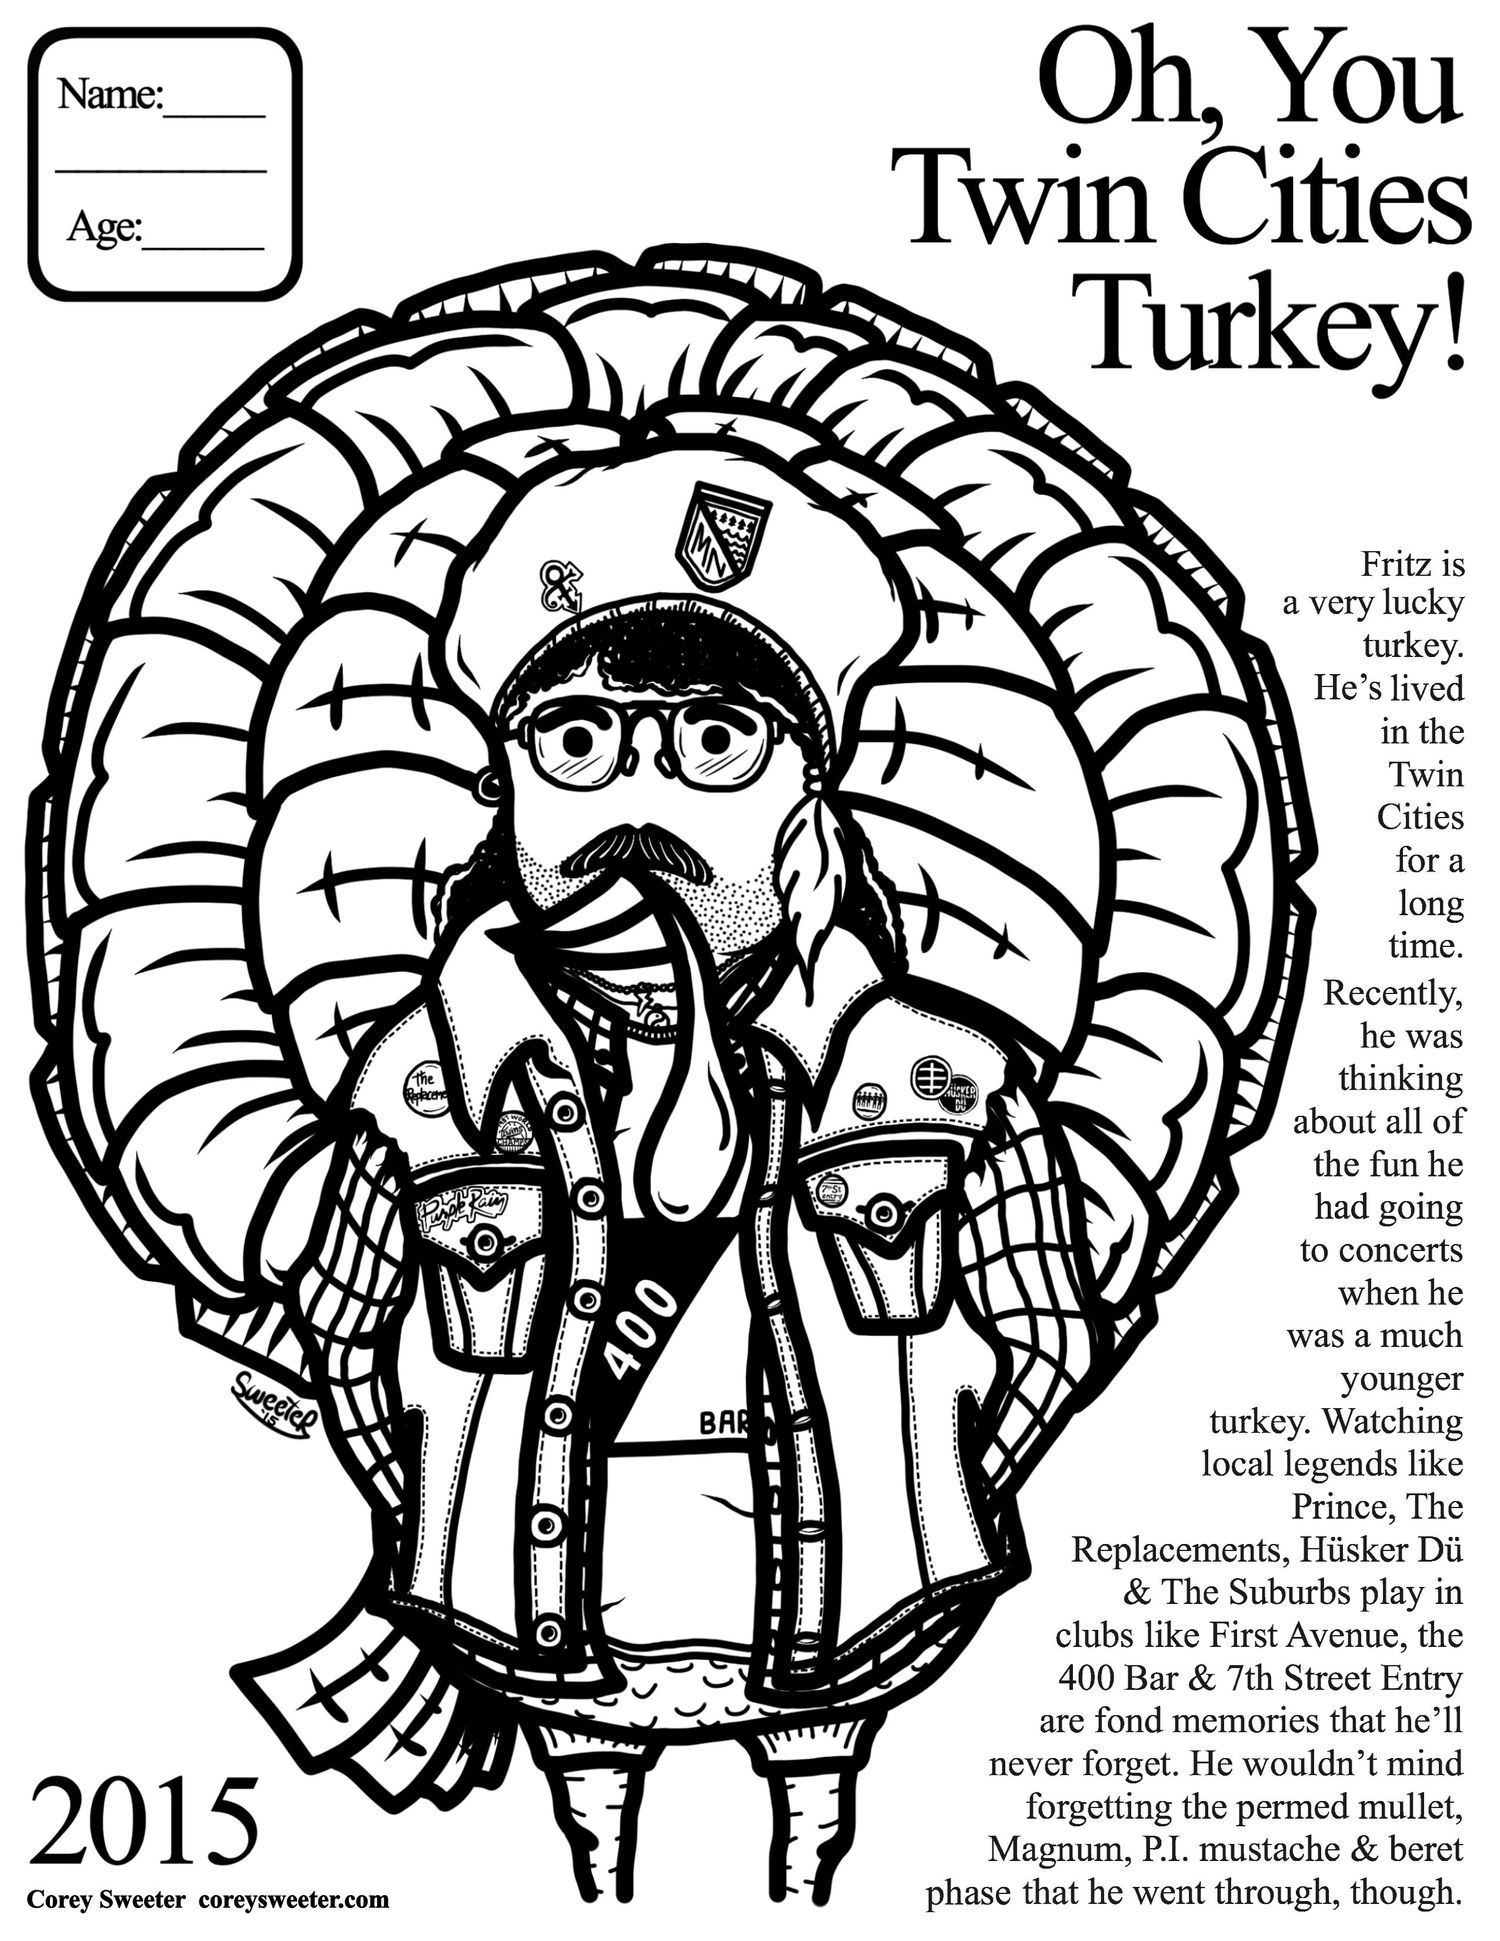 2013 2014 2015 u0026 2016 oh you twin cities turkey as featured